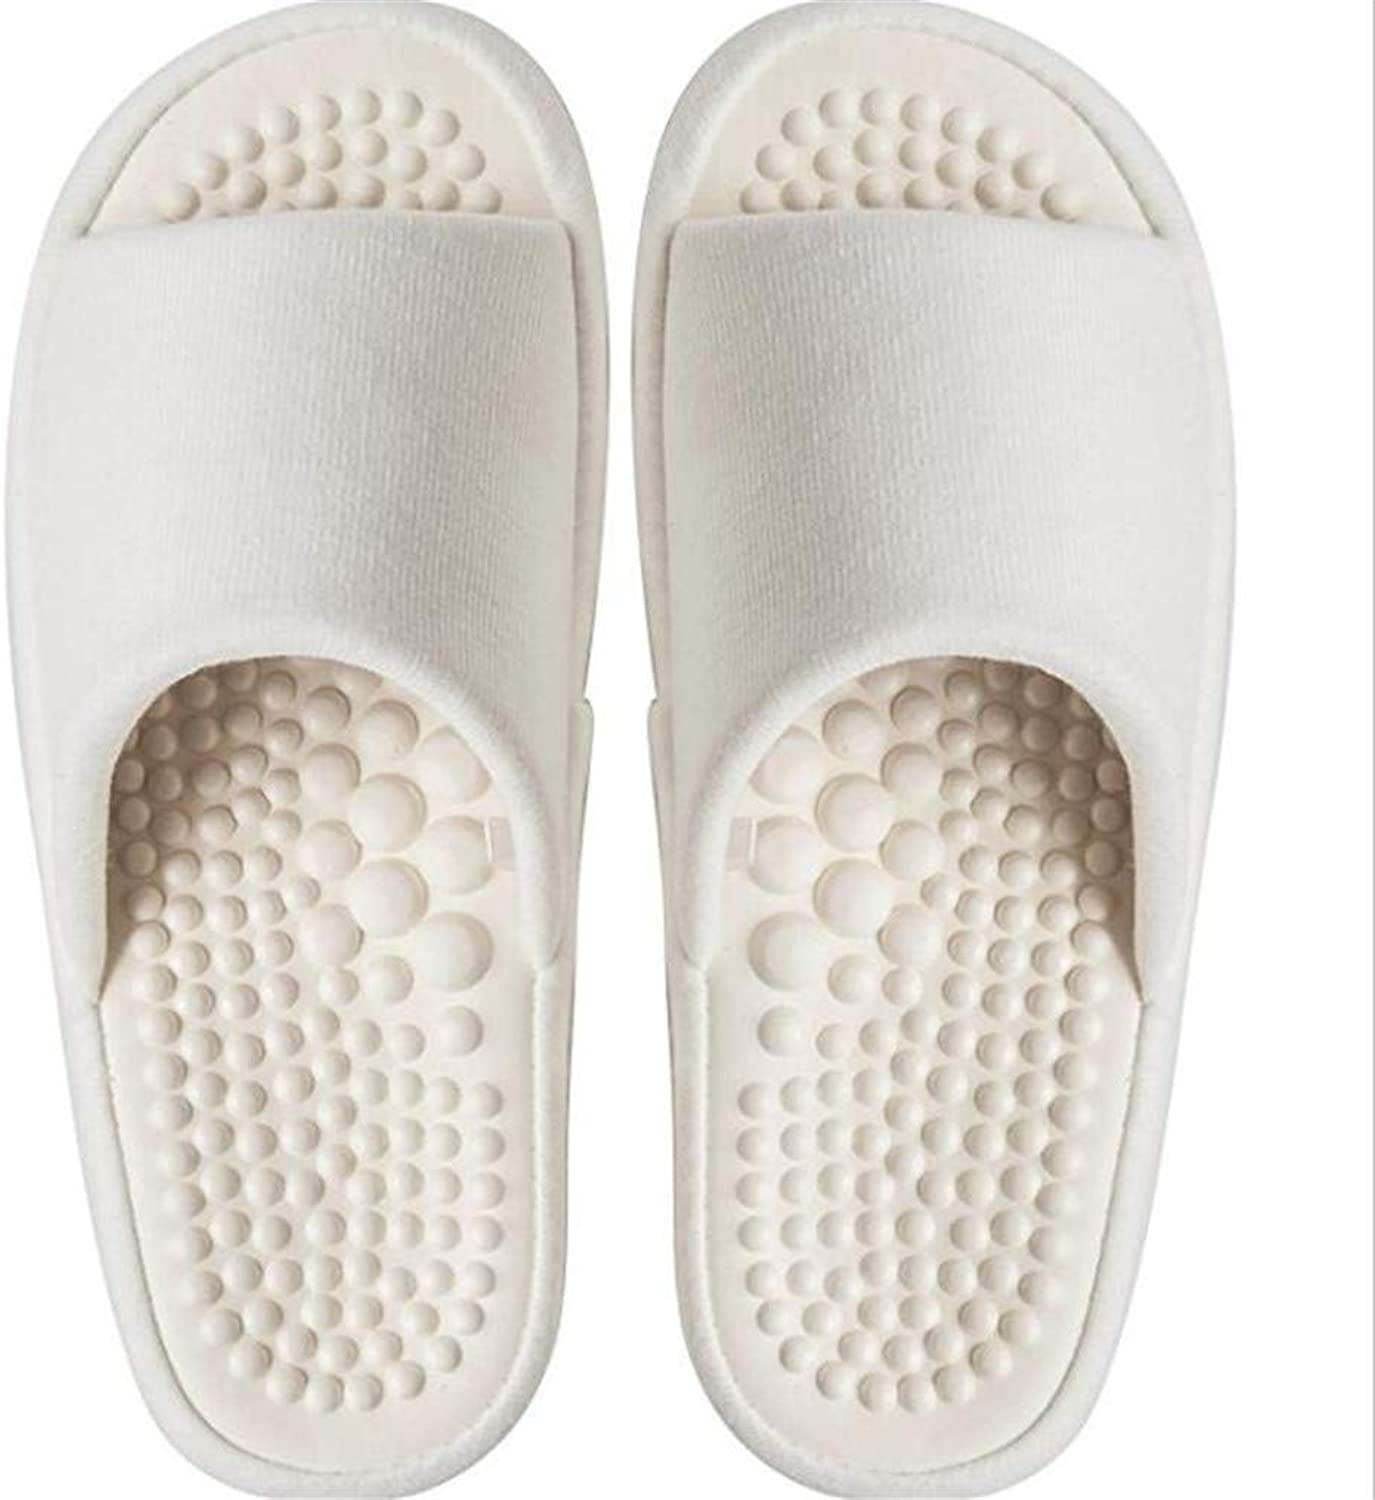 Quick Bathroom Mule Soft Slip-on Slippers Four Seasons Slippers Women's Home Thickness Mute Non-Slip Massage Acupoint Couples Floor Slippers Men,White,36